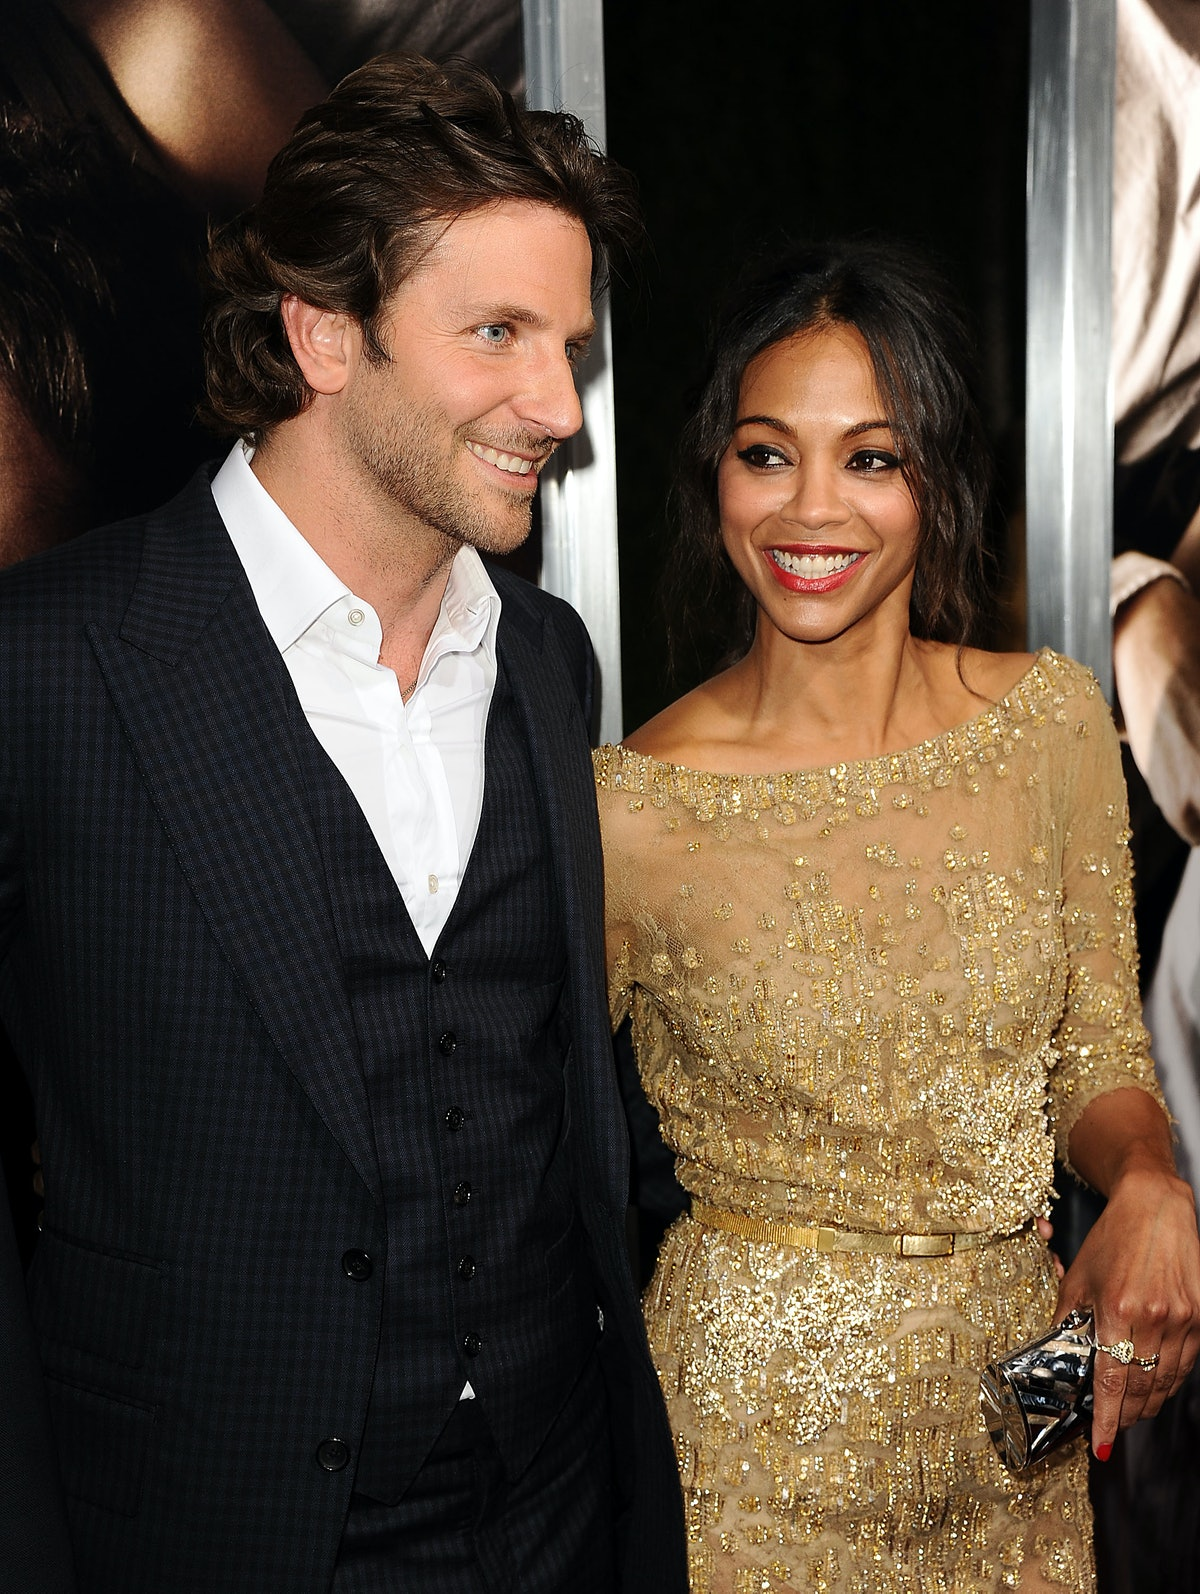 """HOLLYWOOD, CA - SEPTEMBER 04:  Actor Bradley Cooper and actress Zoe Saldana attend the premiere of """"..."""